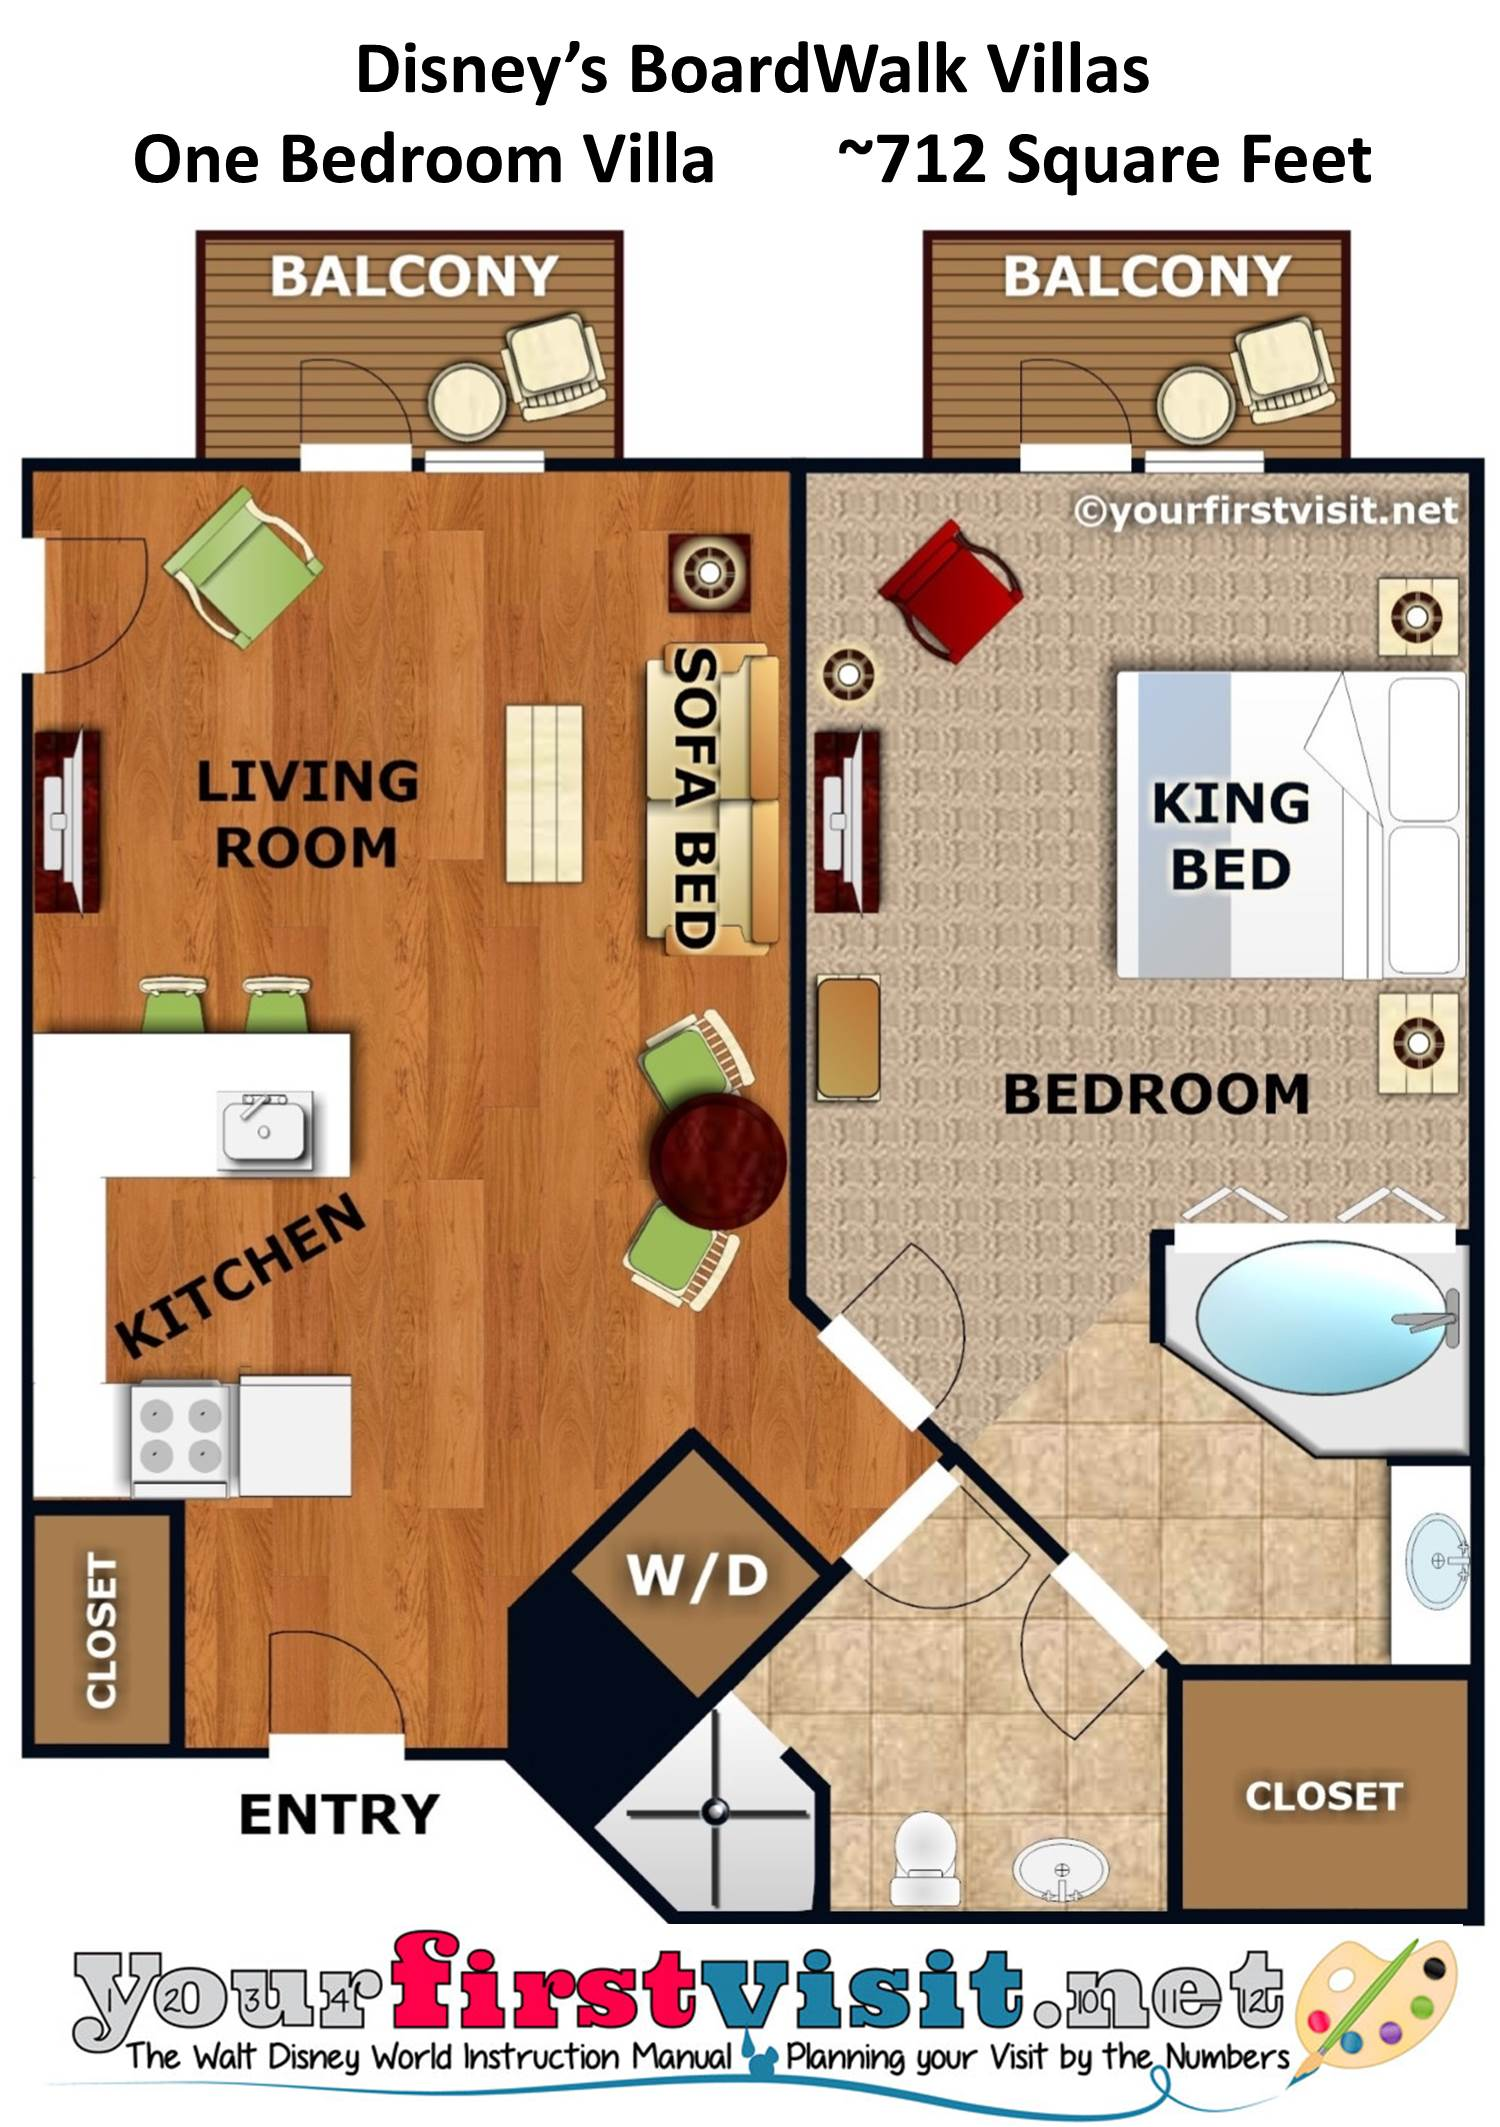 Floor Plan One Bedroom Villa Disney's BoardWalk Villas from yourfirstvisit.net